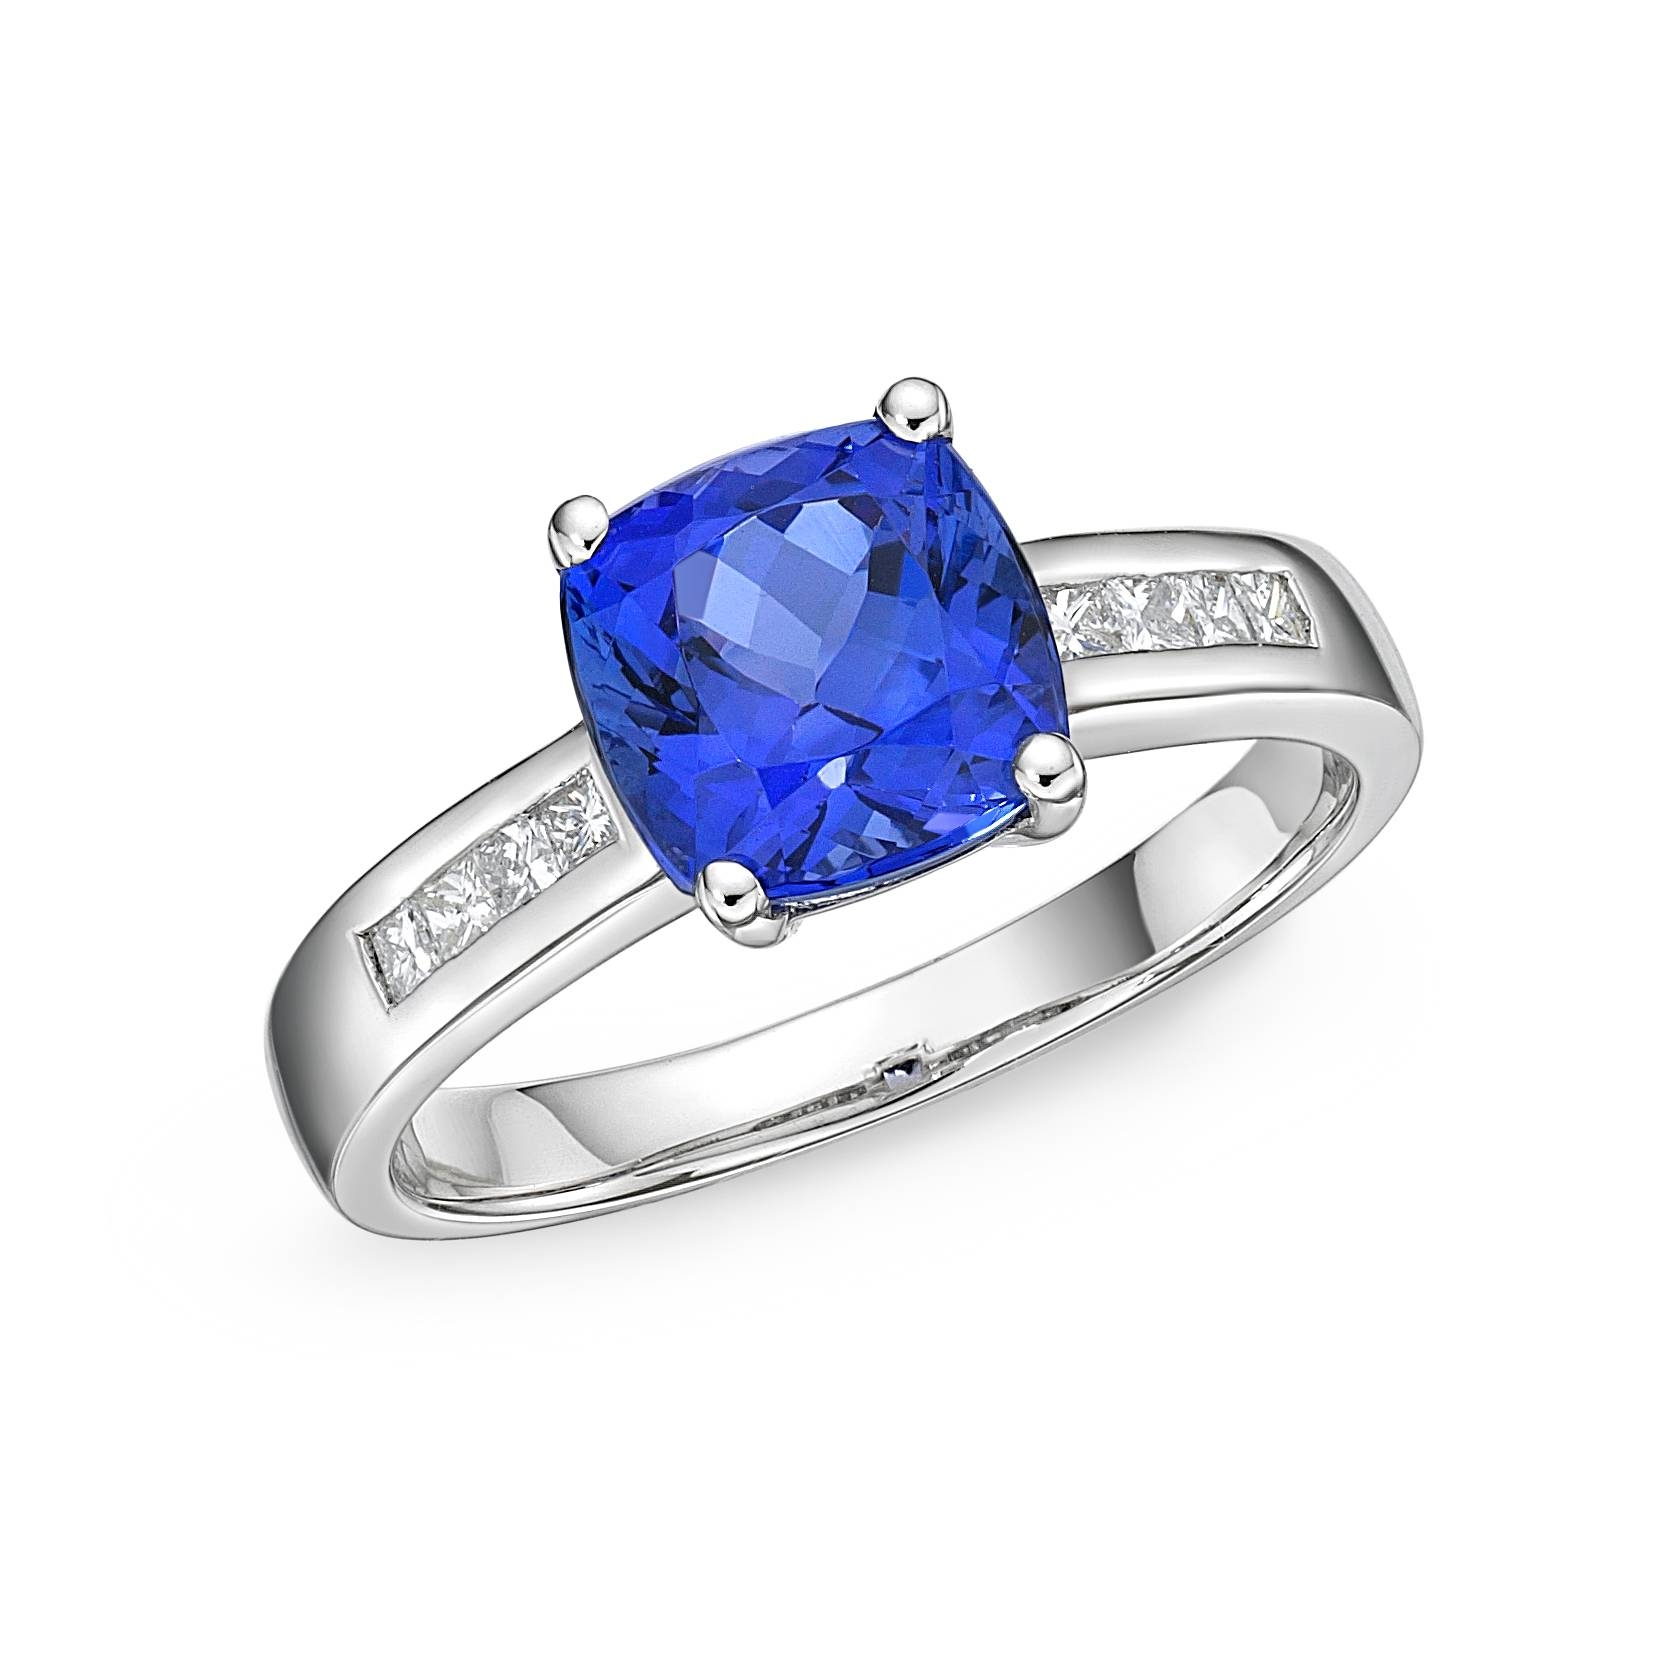 2.34 Cushion Cut Tanzanite & Diamond Solitaire Ring : Richland Regarding Diamond Tanzanite Engagement Rings (Gallery 8 of 15)